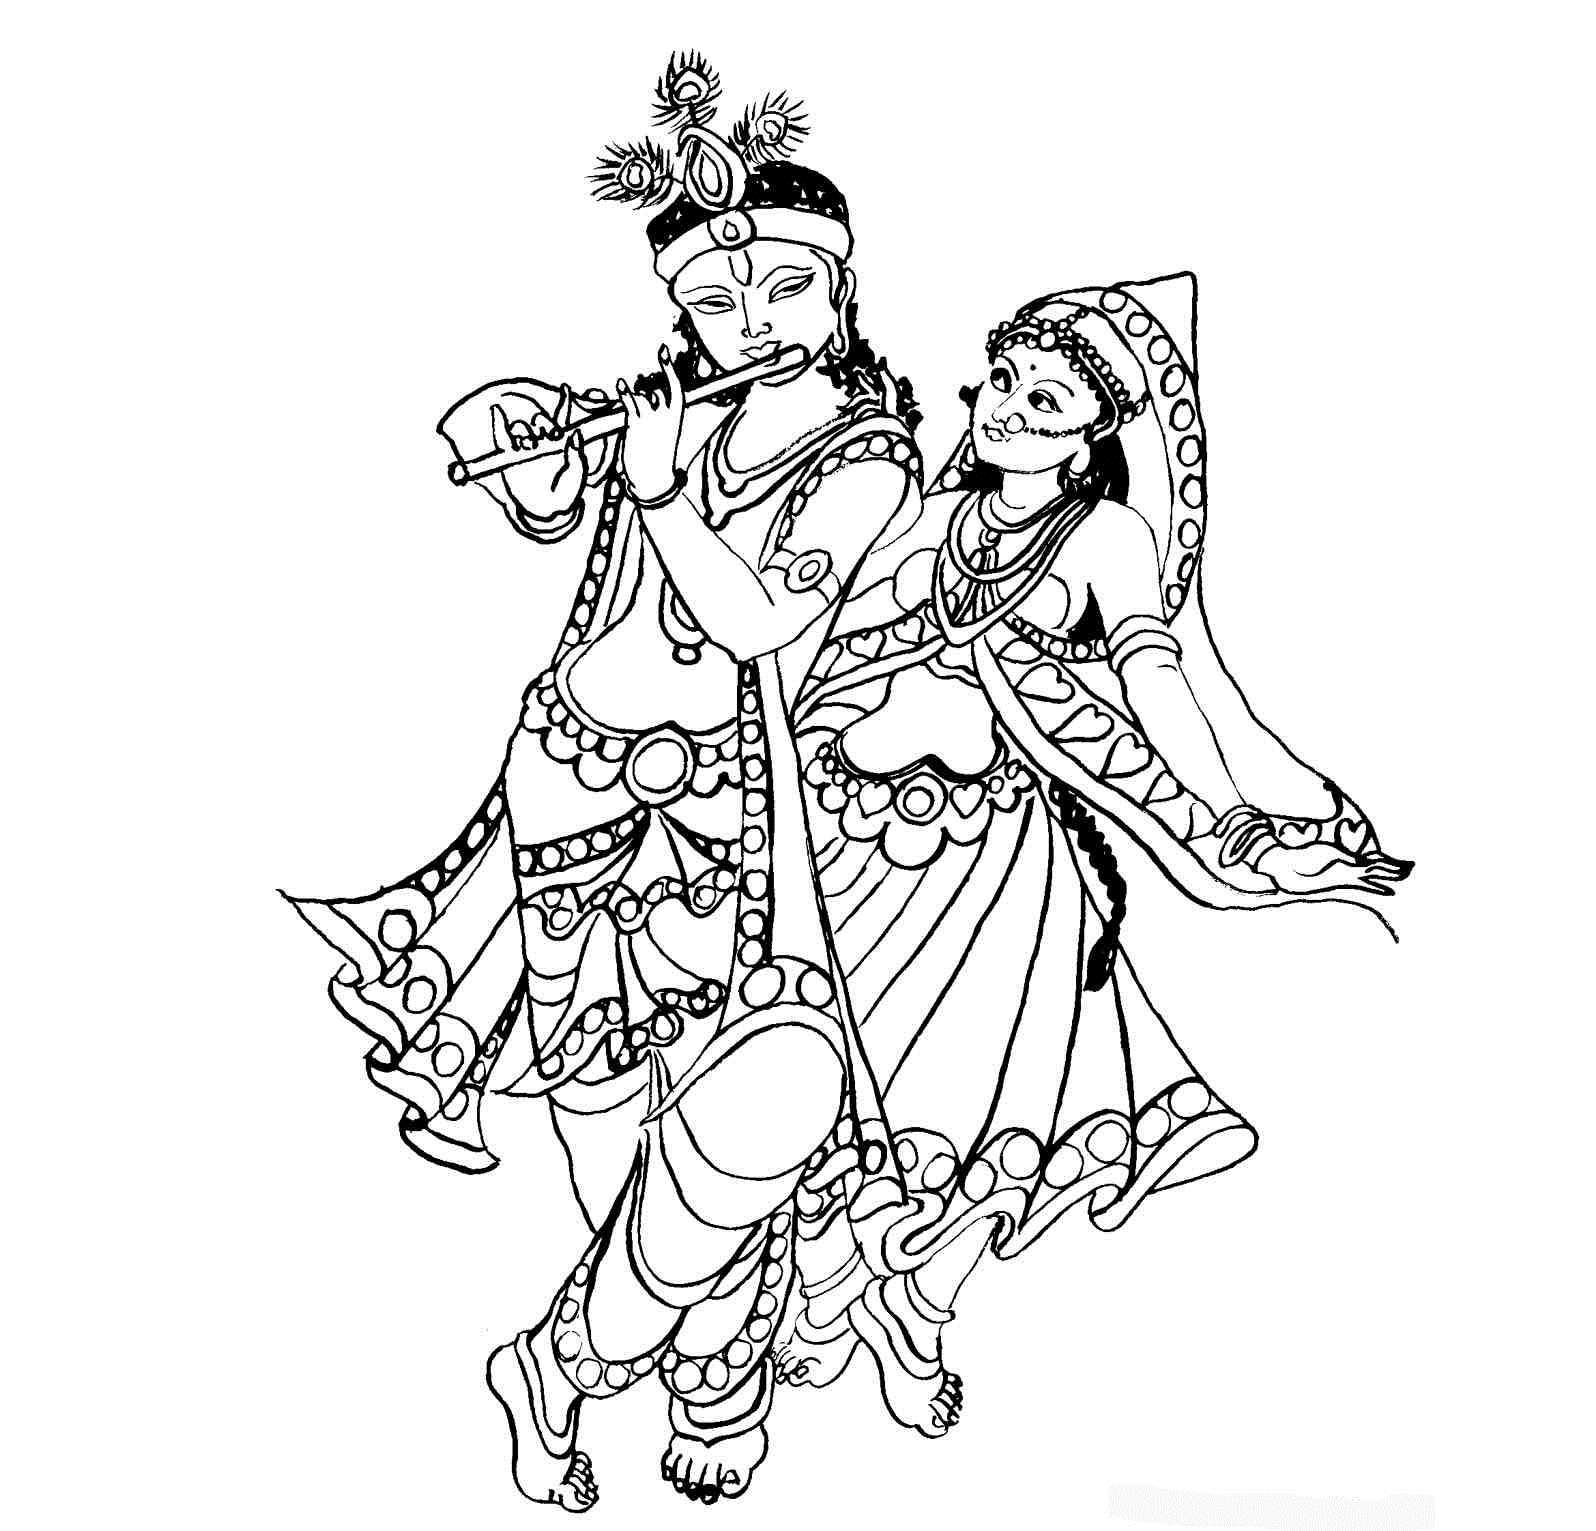 krishna pages for coloring - photo#19